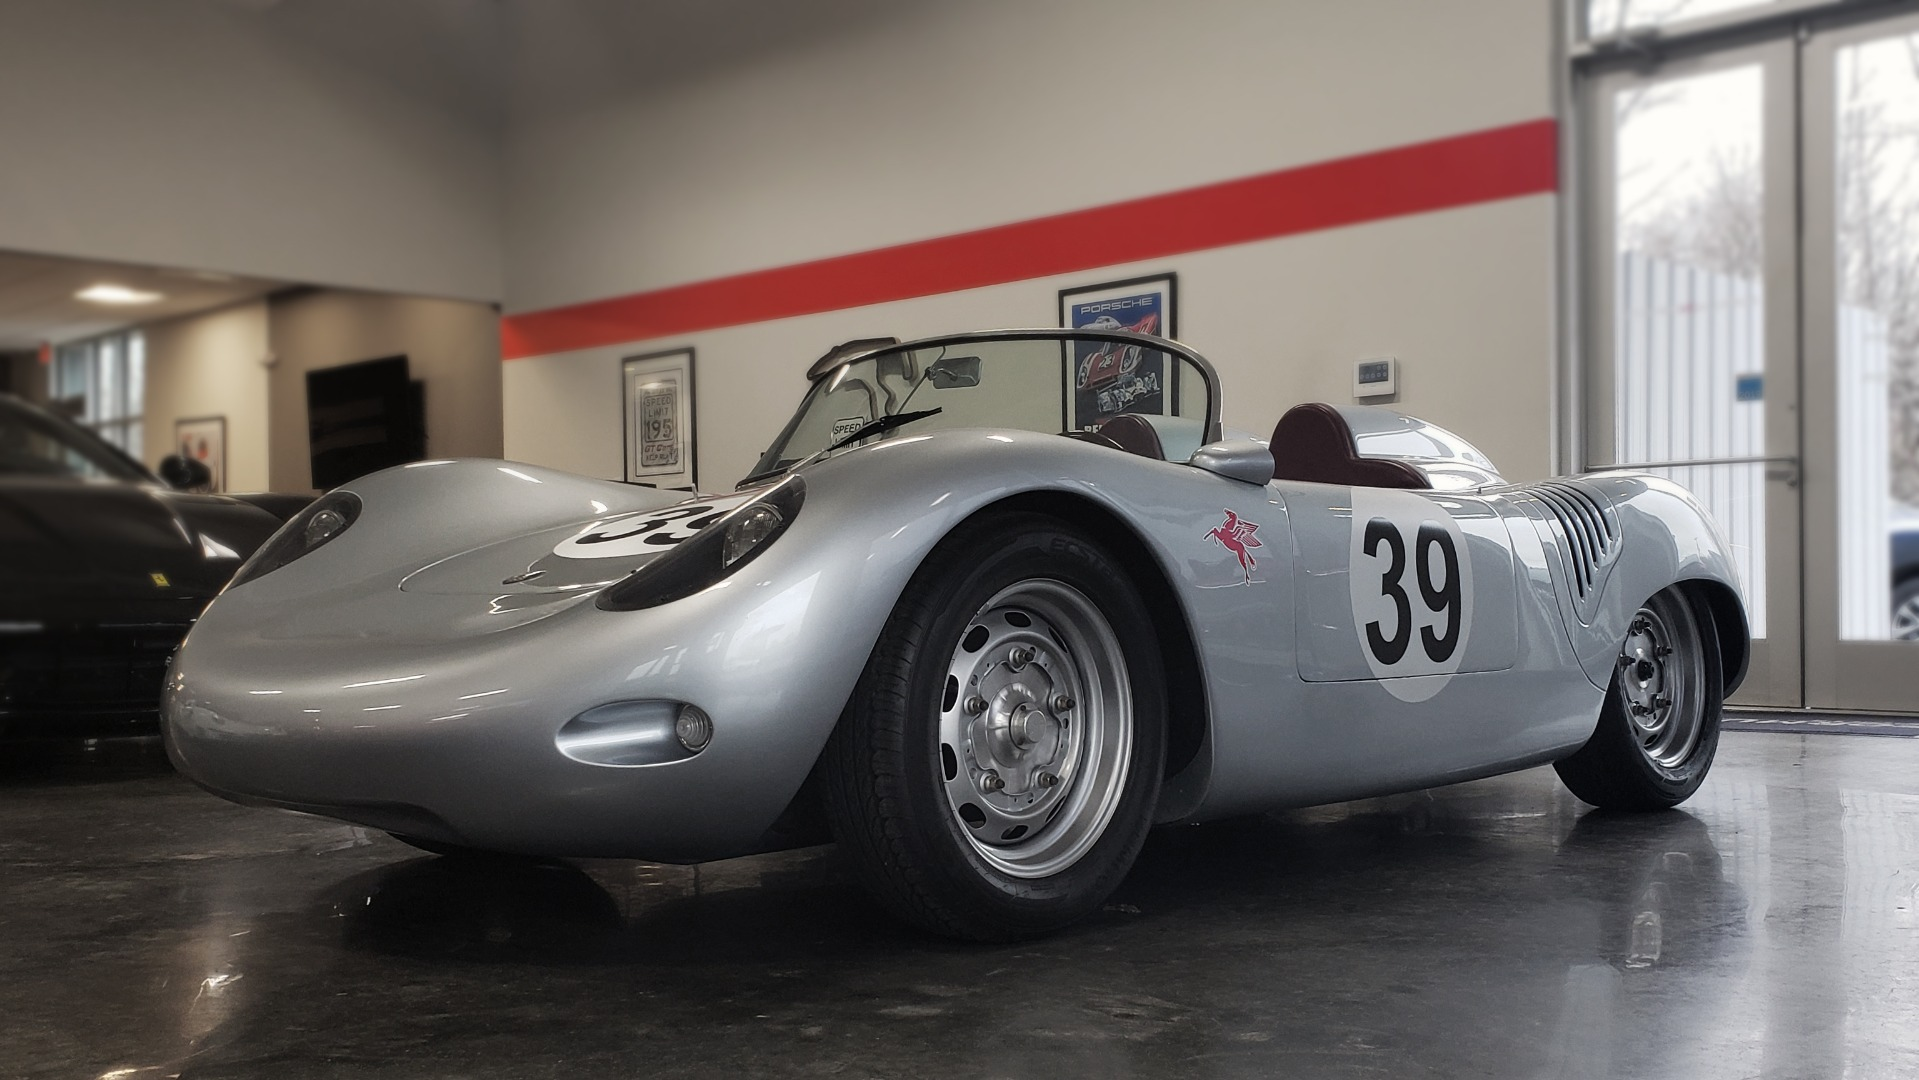 Used 1960 Porsche 718 RSK SPYDER REPLICA / 2275CC W/44MM WEBER (160HP) / 4-SPD MANUAL for sale $39,999 at Formula Imports in Charlotte NC 28227 52